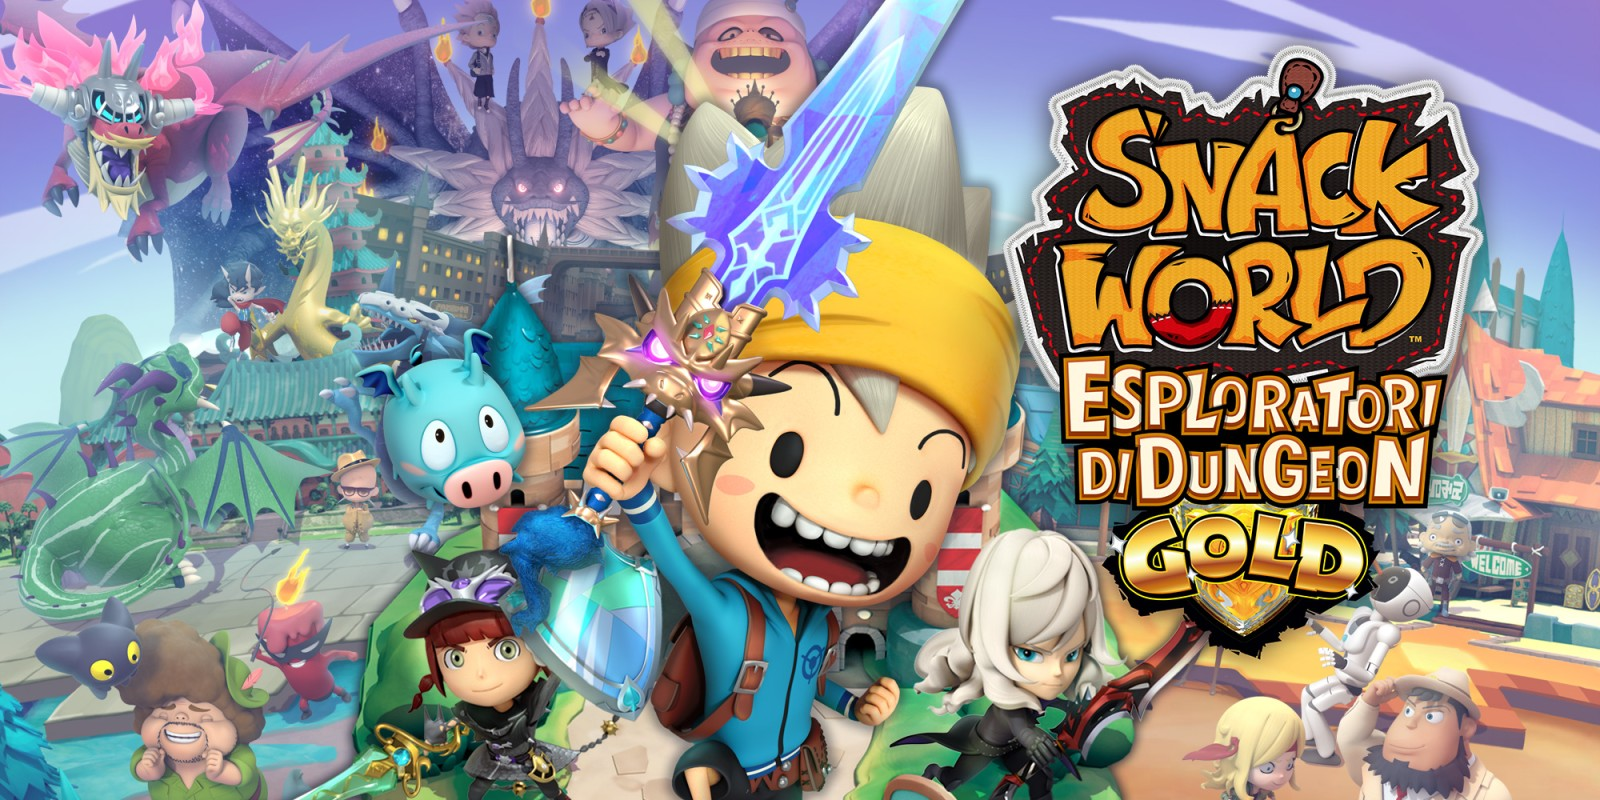 SNACK WORLD: ESPLORATORI DI DUNGEON – GOLD